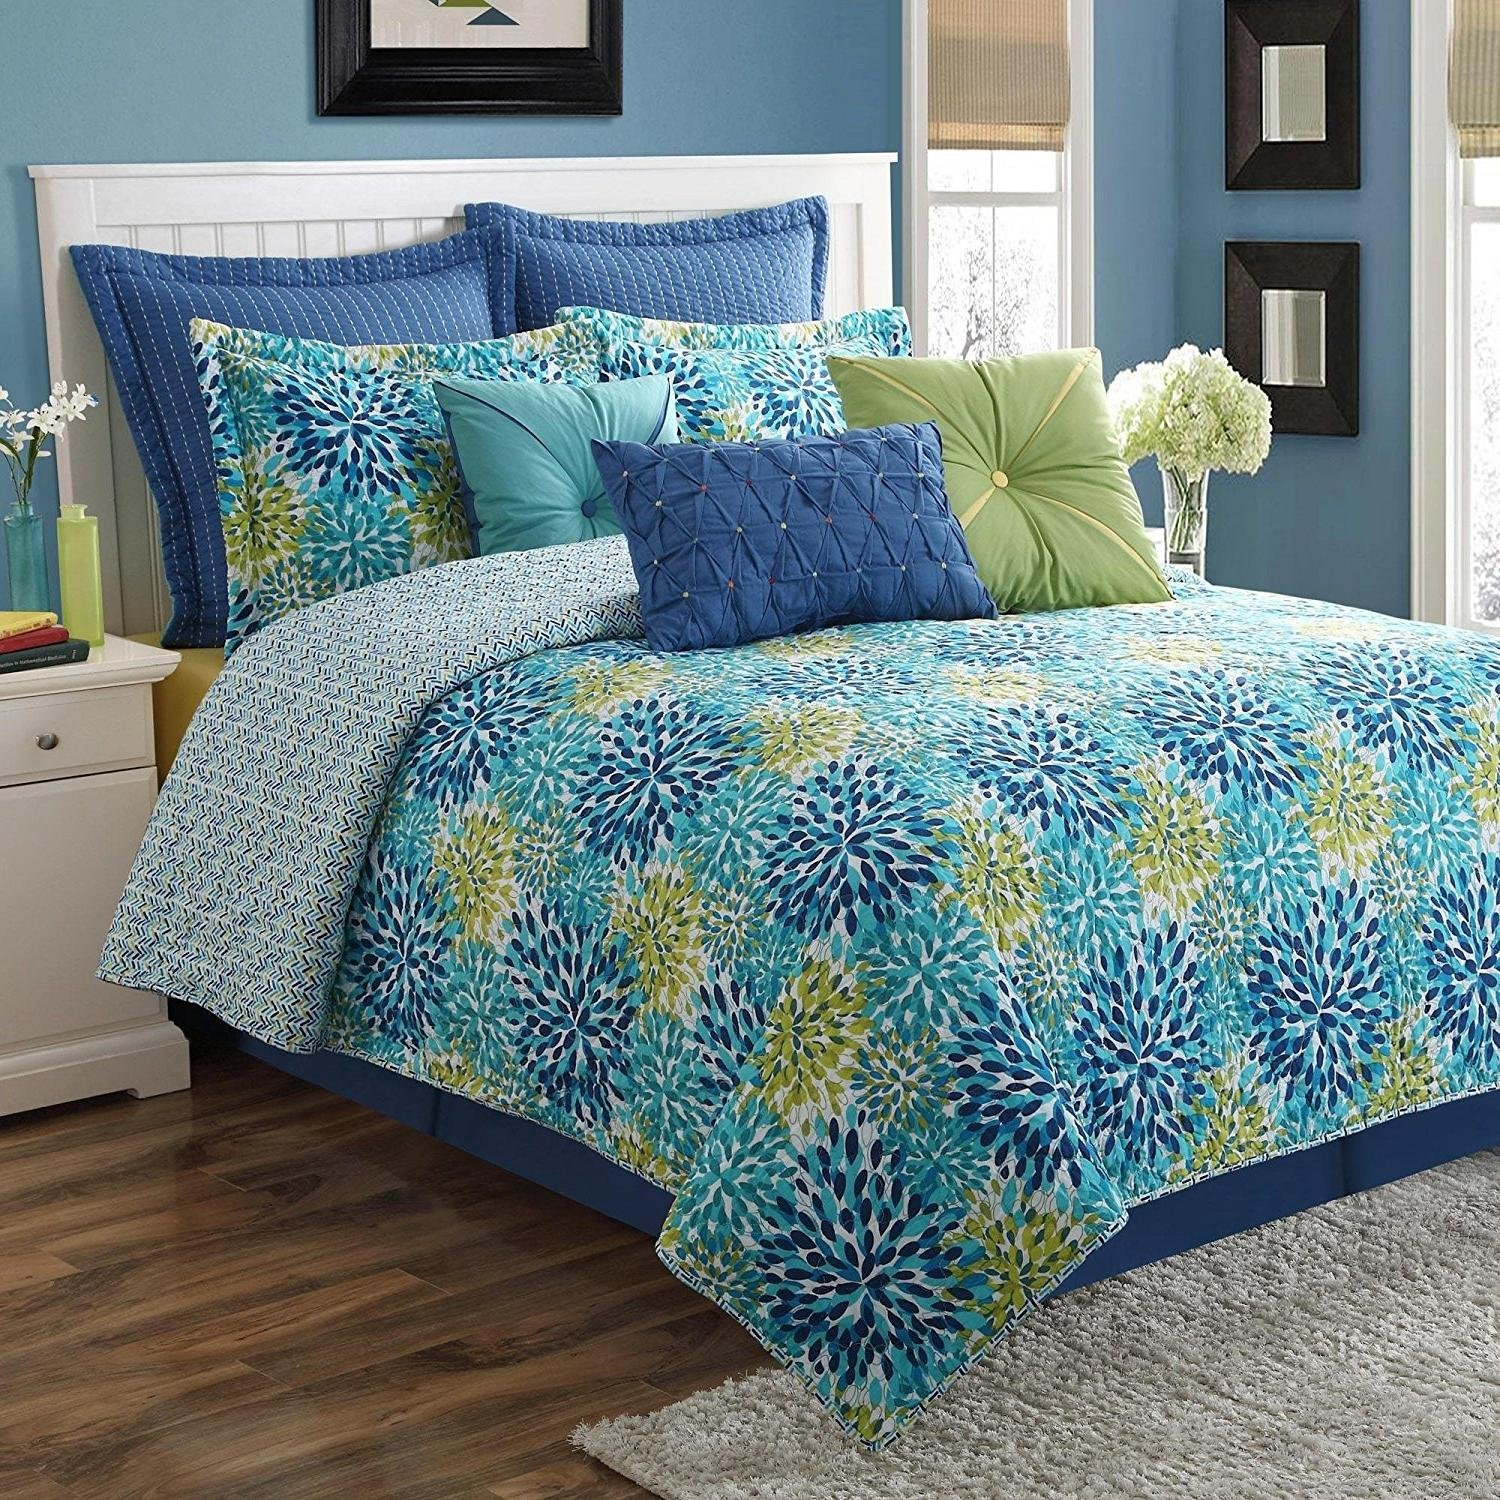 MISC 2pc Royal Blue Green White Twin Quilt Set, Bohemian Floral Garden Themed Bedding Vibrant Navy Aqua Bright Cheery Geometric Boho Pretty Trendy Contemporary Flower Teal, Cotton